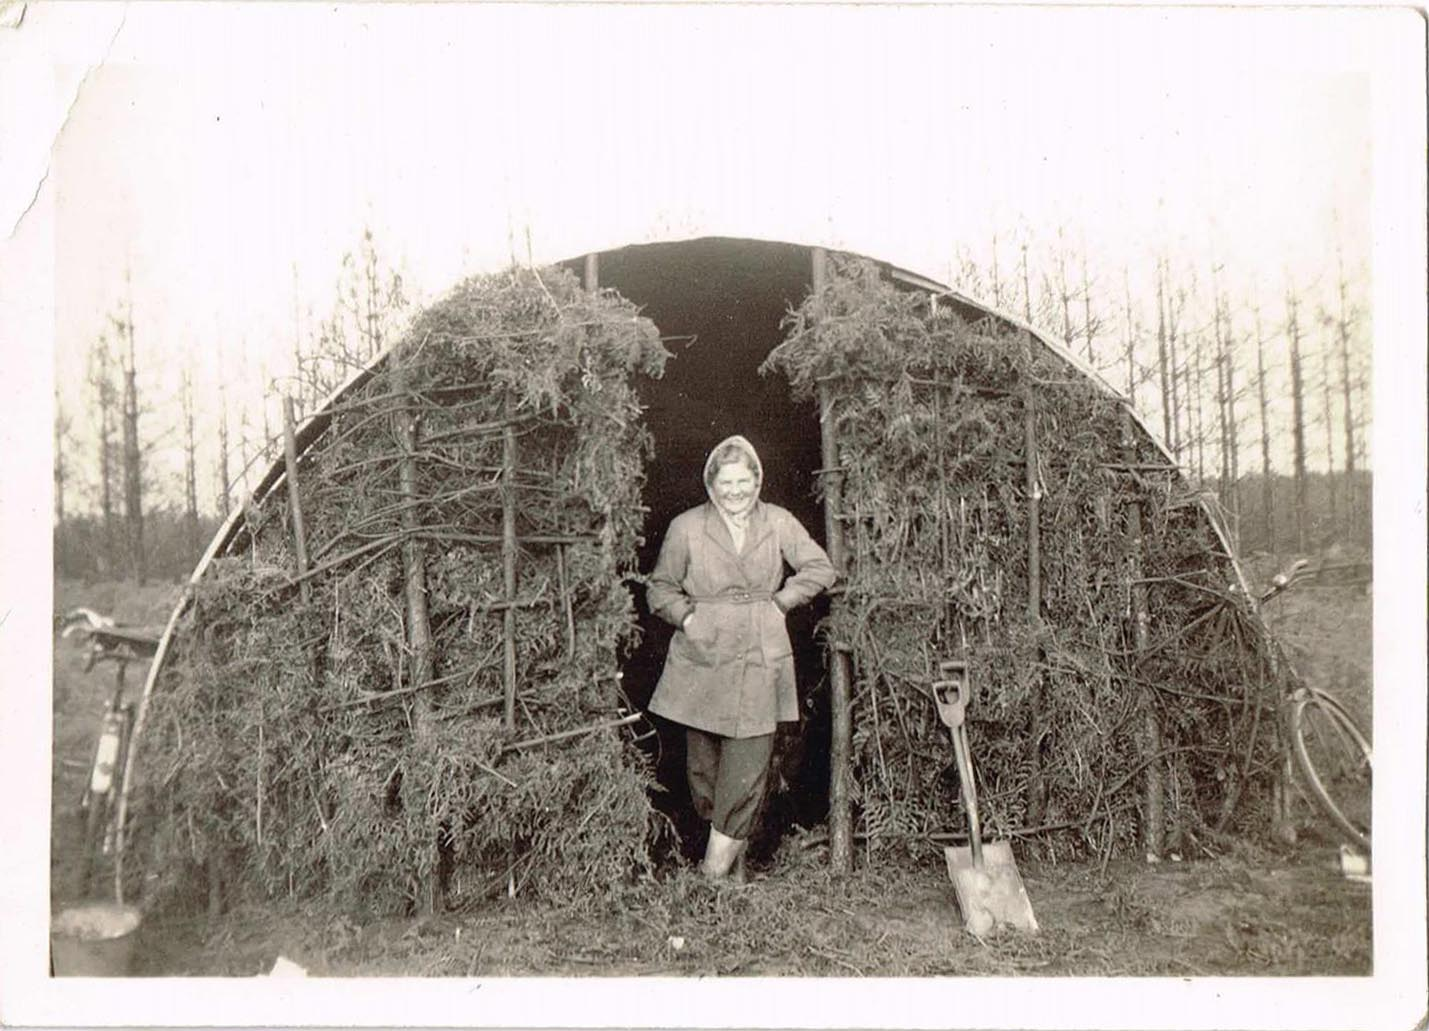 Lumber Jills (aka members of the Women's Timber Corps) at Culford Camp. Margaret Elizabeth Sutherland (nee Coldwell) at Culford Camp, Suffolk